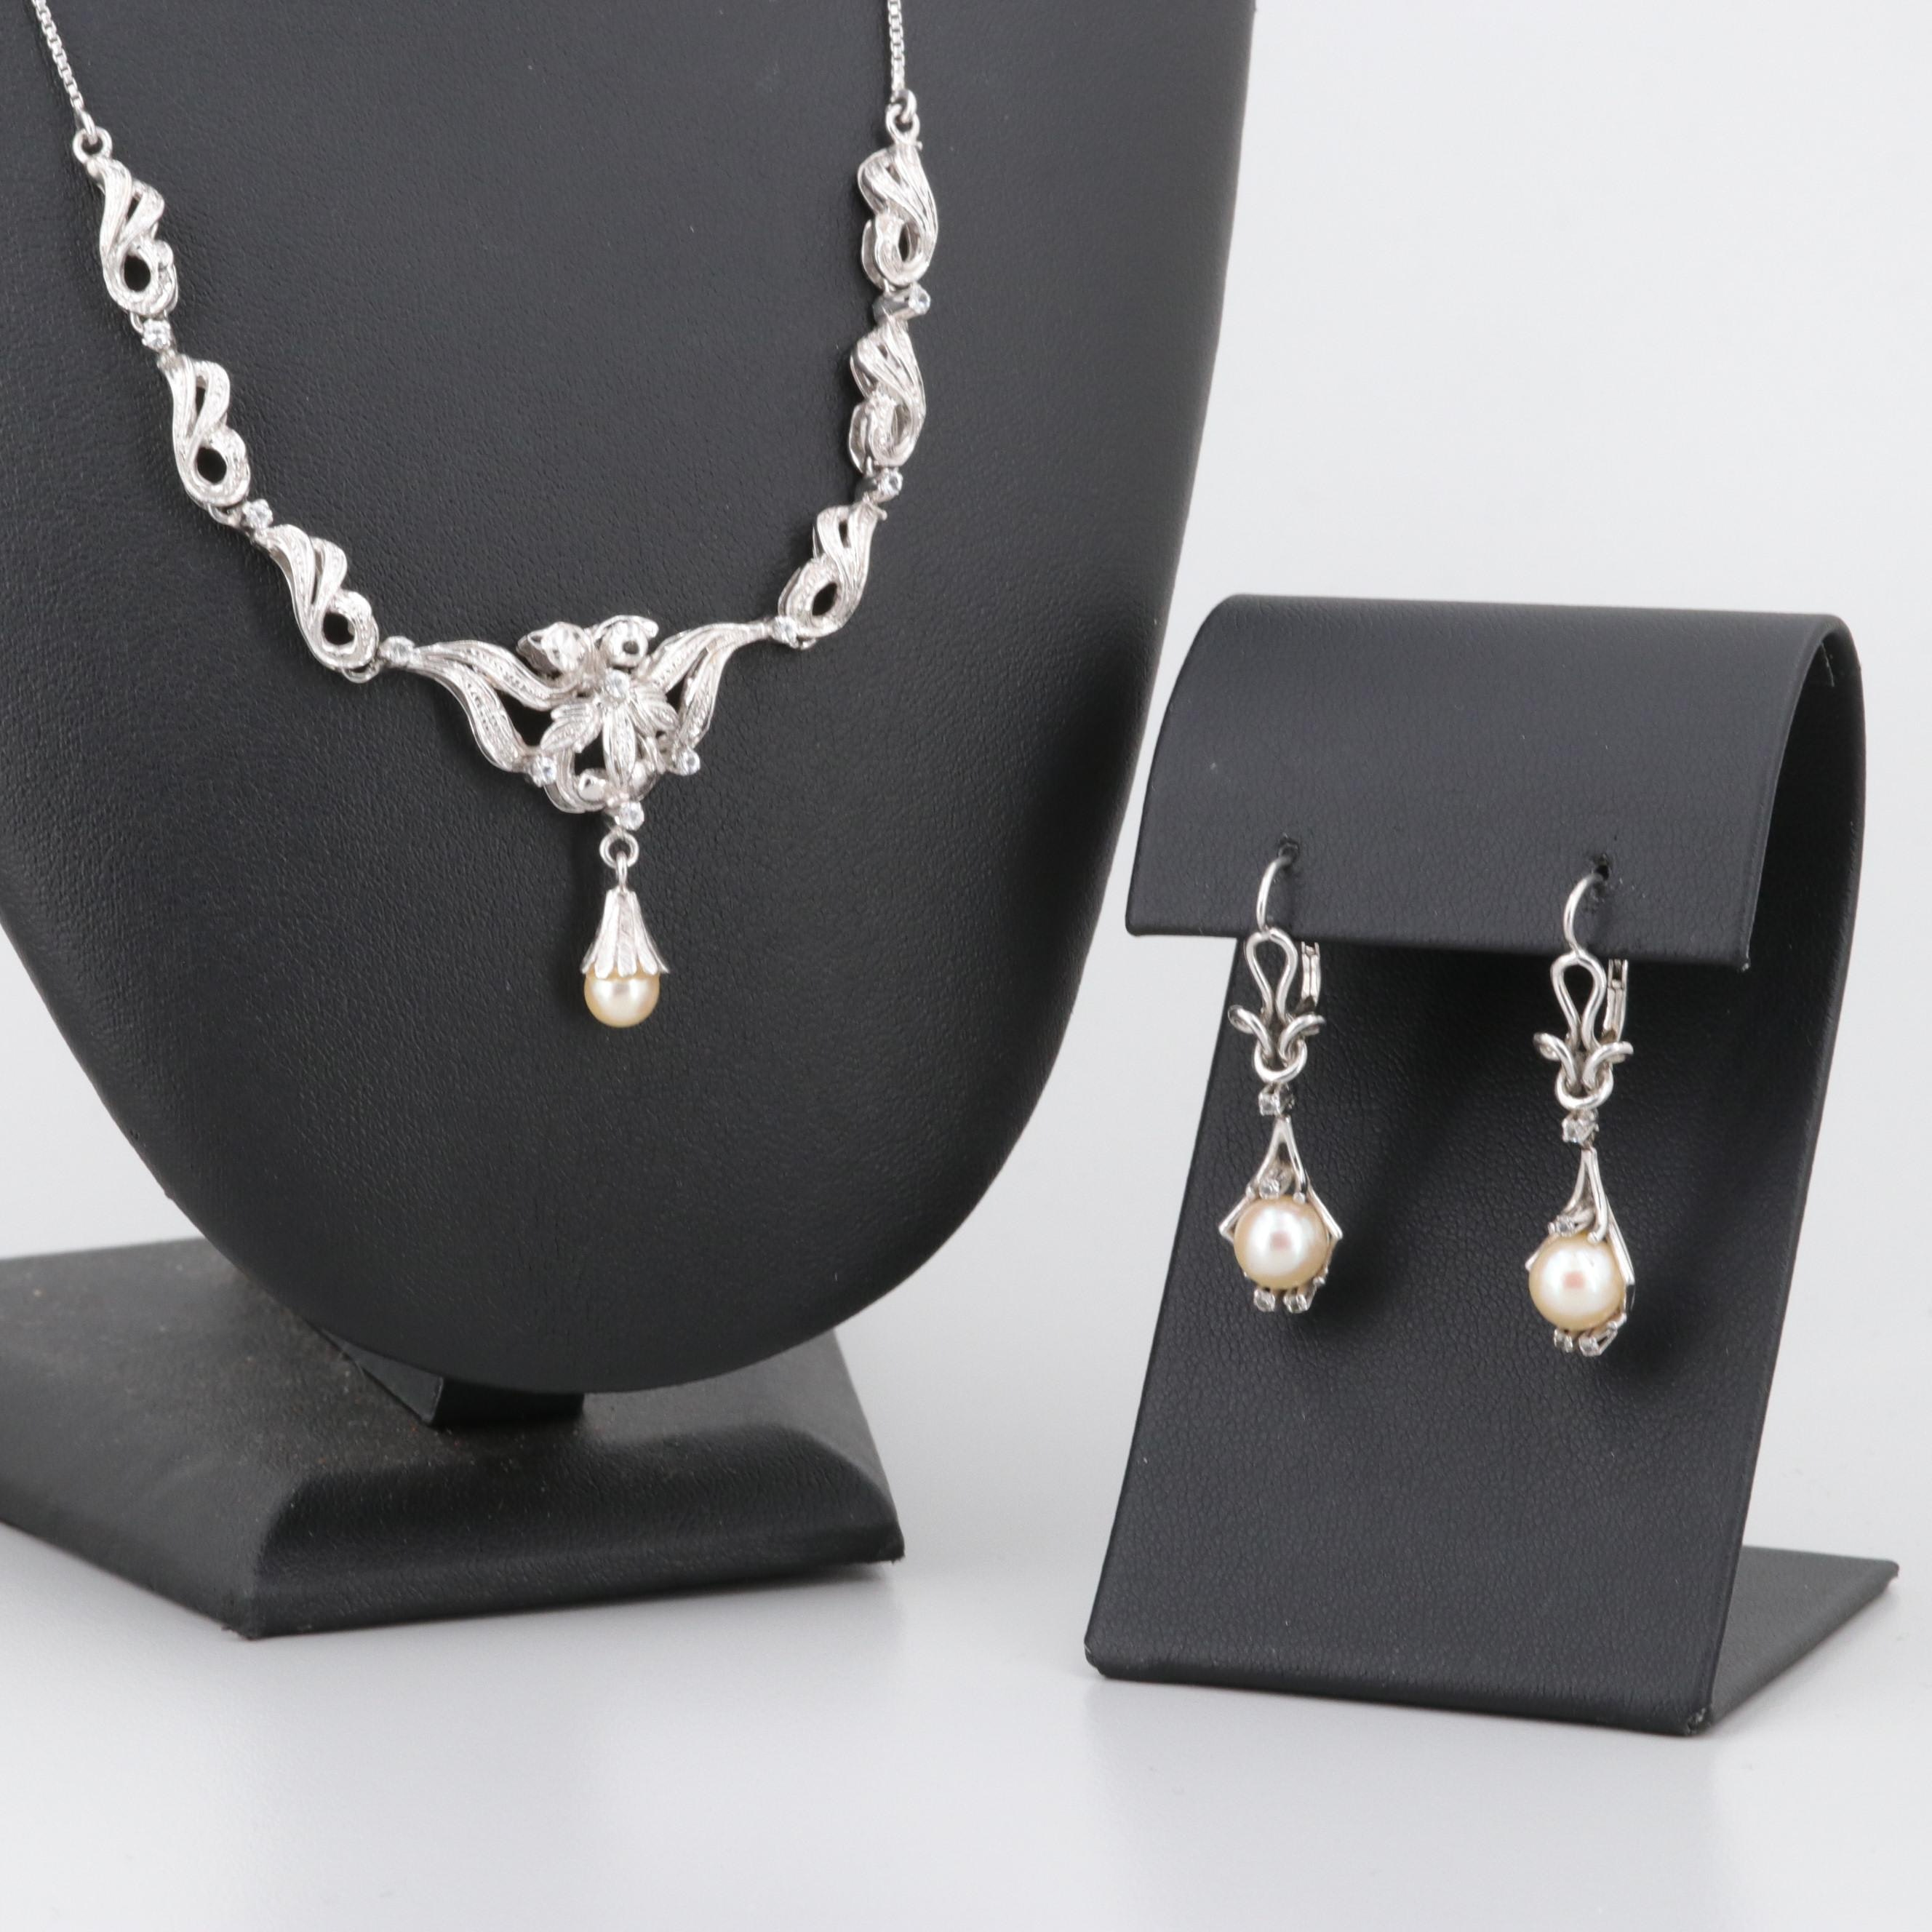 Vintage 18K White Gold Cultured Pearl and White Topaz Necklace and Earrings